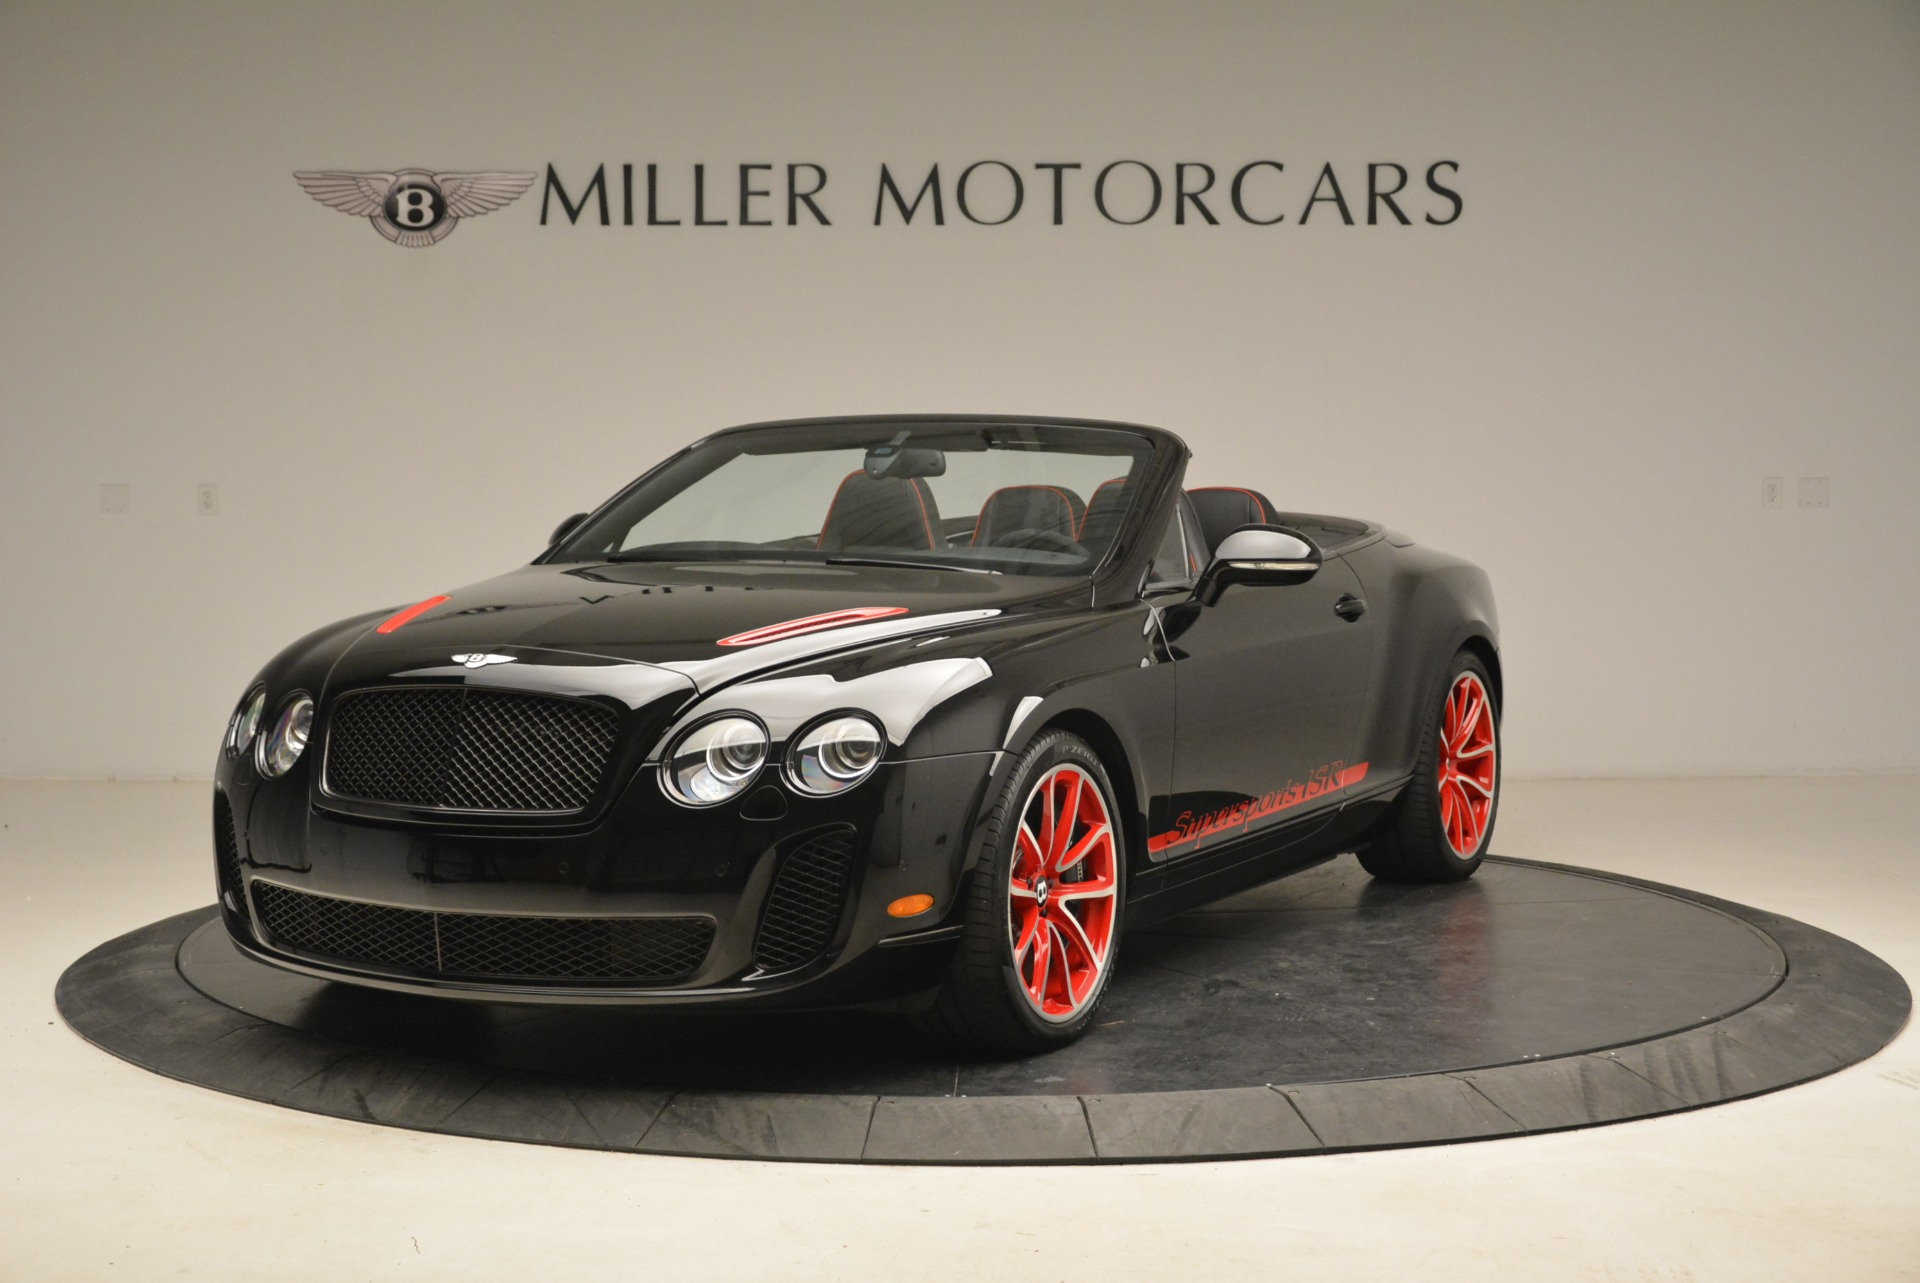 Used 2013 Bentley Continental GT Supersports Convertible ISR for sale Sold at Bugatti of Greenwich in Greenwich CT 06830 1